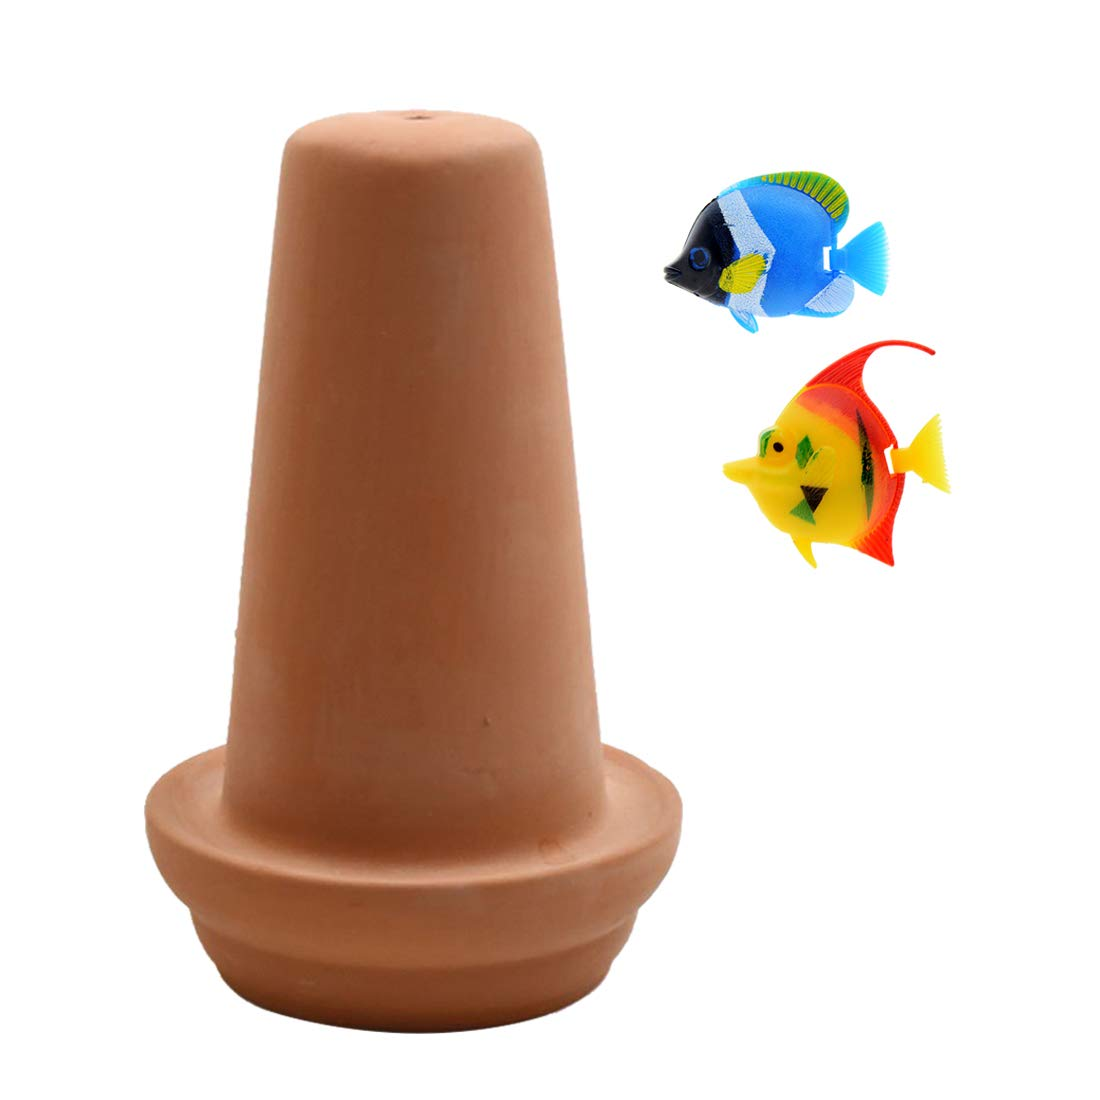 Uotyle Ceramic Spawning Breed Cone Orange Fish Tank Ornaments for Discus Clownfish Angelfish Aquatic Pets Breeding Cones Play Hide Rest 7 Inches